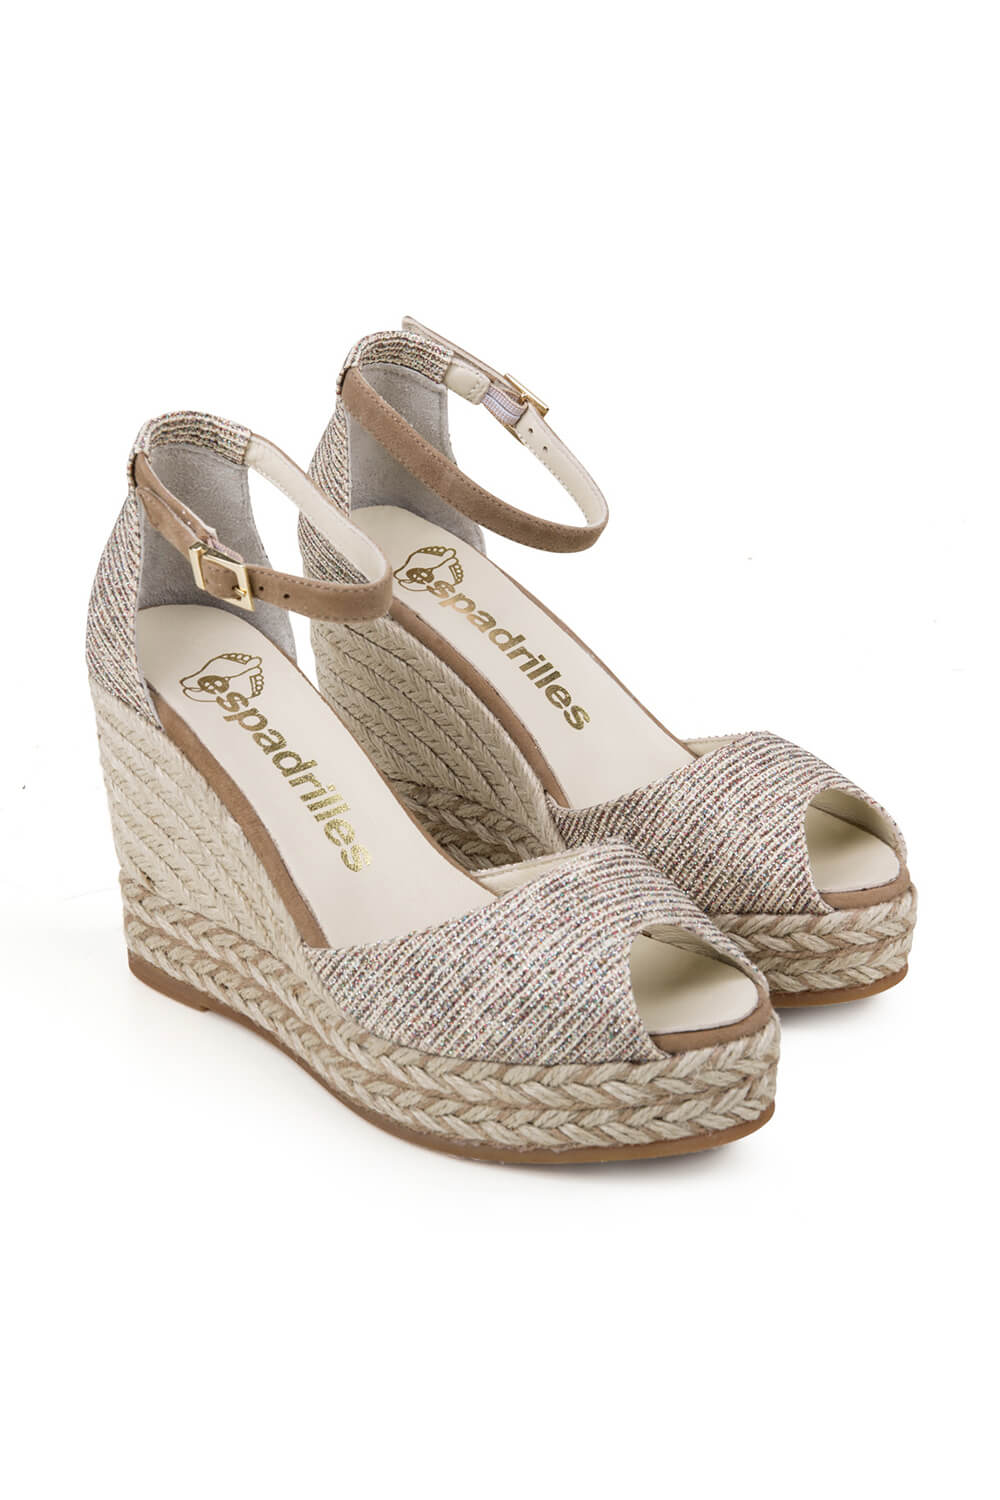 Espadrilles open toe shoe made of Lurex ANDA CAMA MULTI